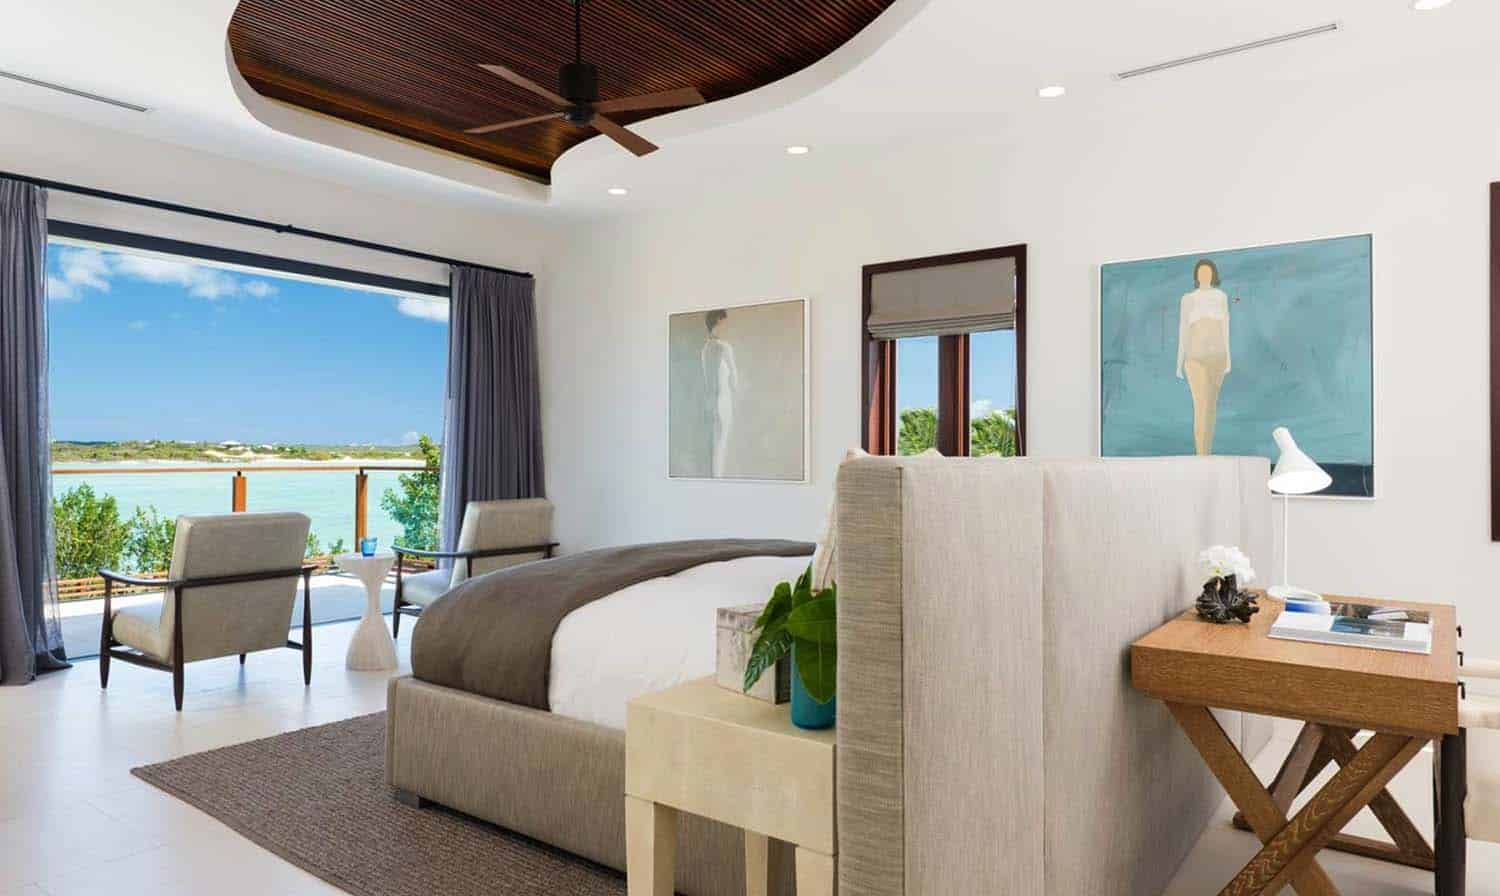 Turtle House-Turks And Caicos Islands-24-1 Kindesign